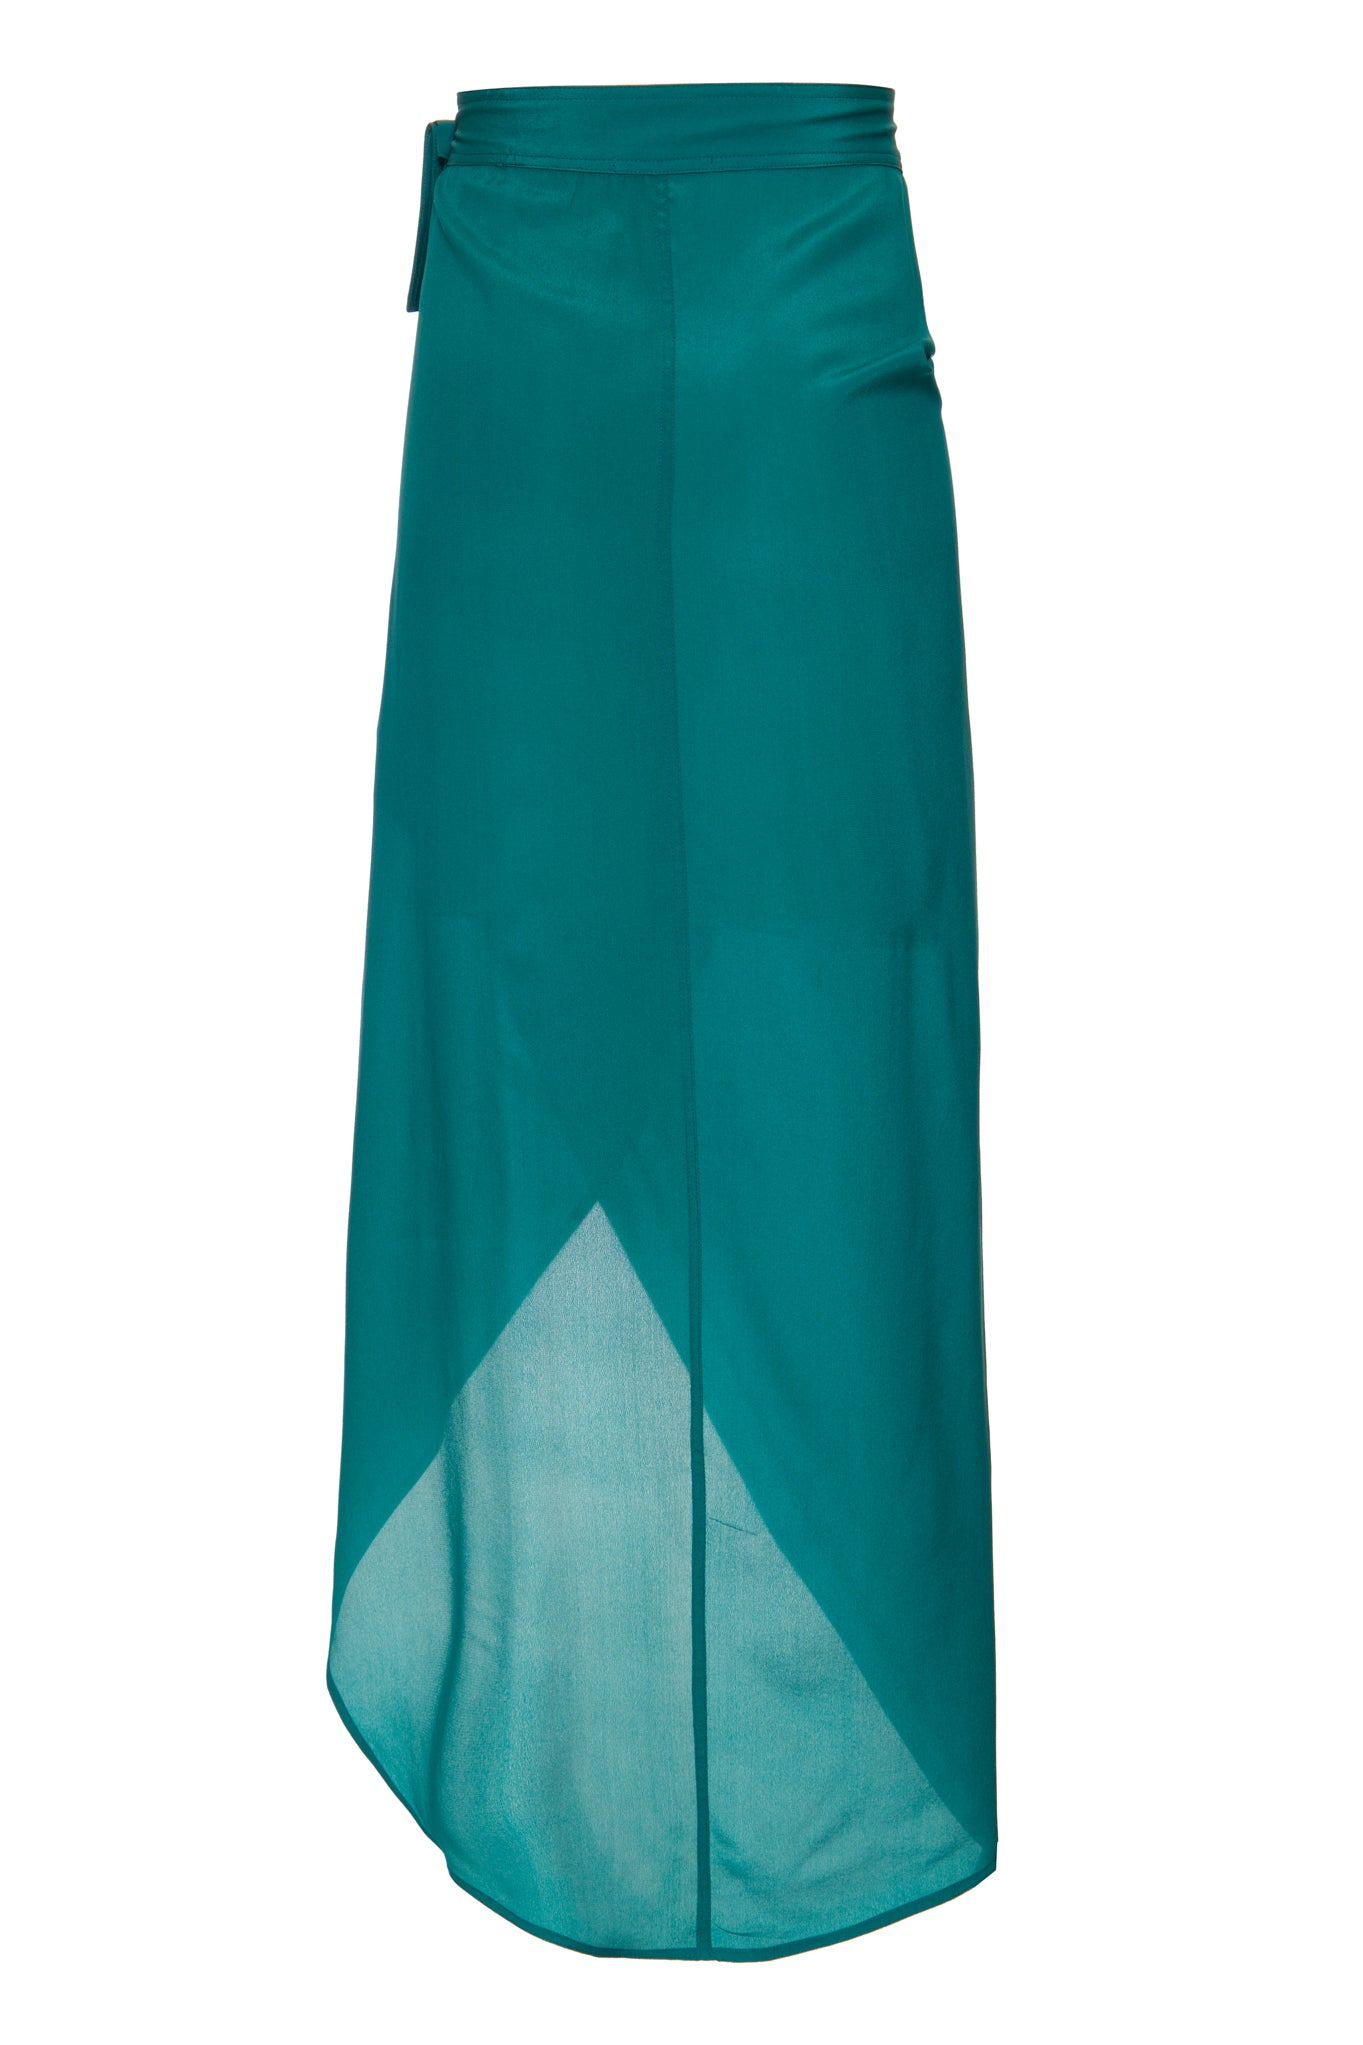 BLUE ENVELOPE SKIRT